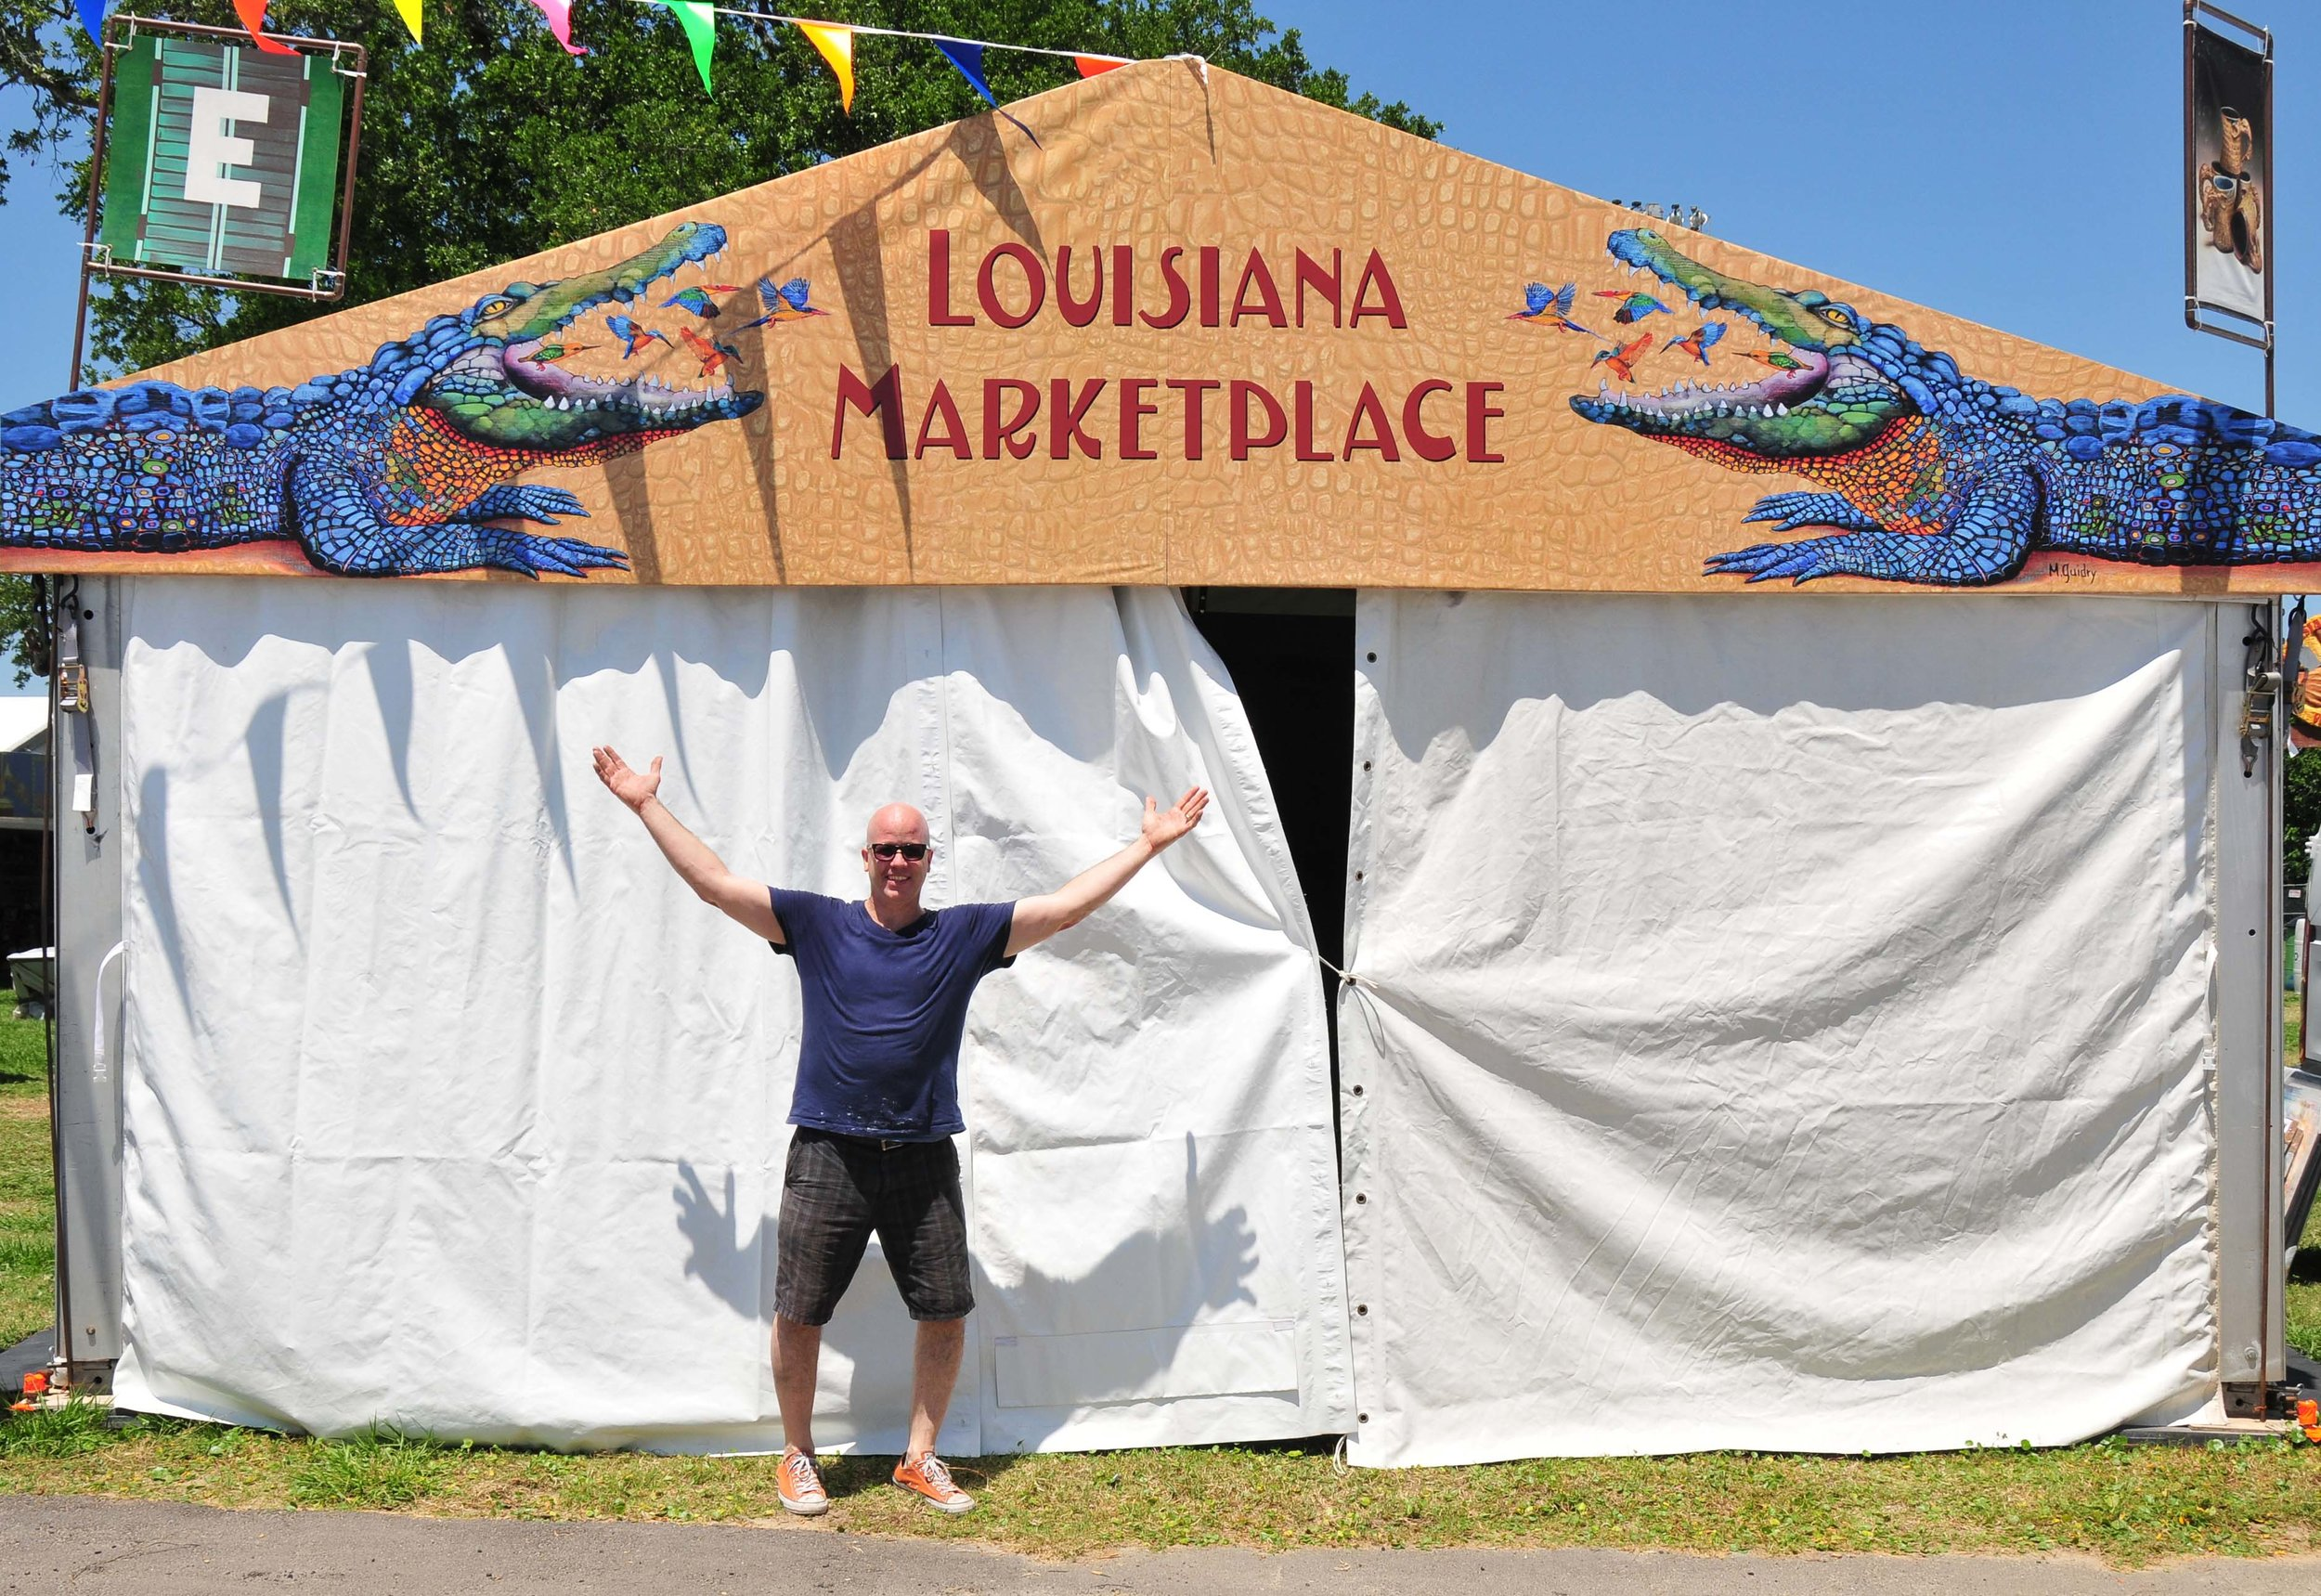 louisiana-marketplace-new-orleans-jazz-and-heritage-festival-alligator-m-michael-guidry-artist-painting.jpg